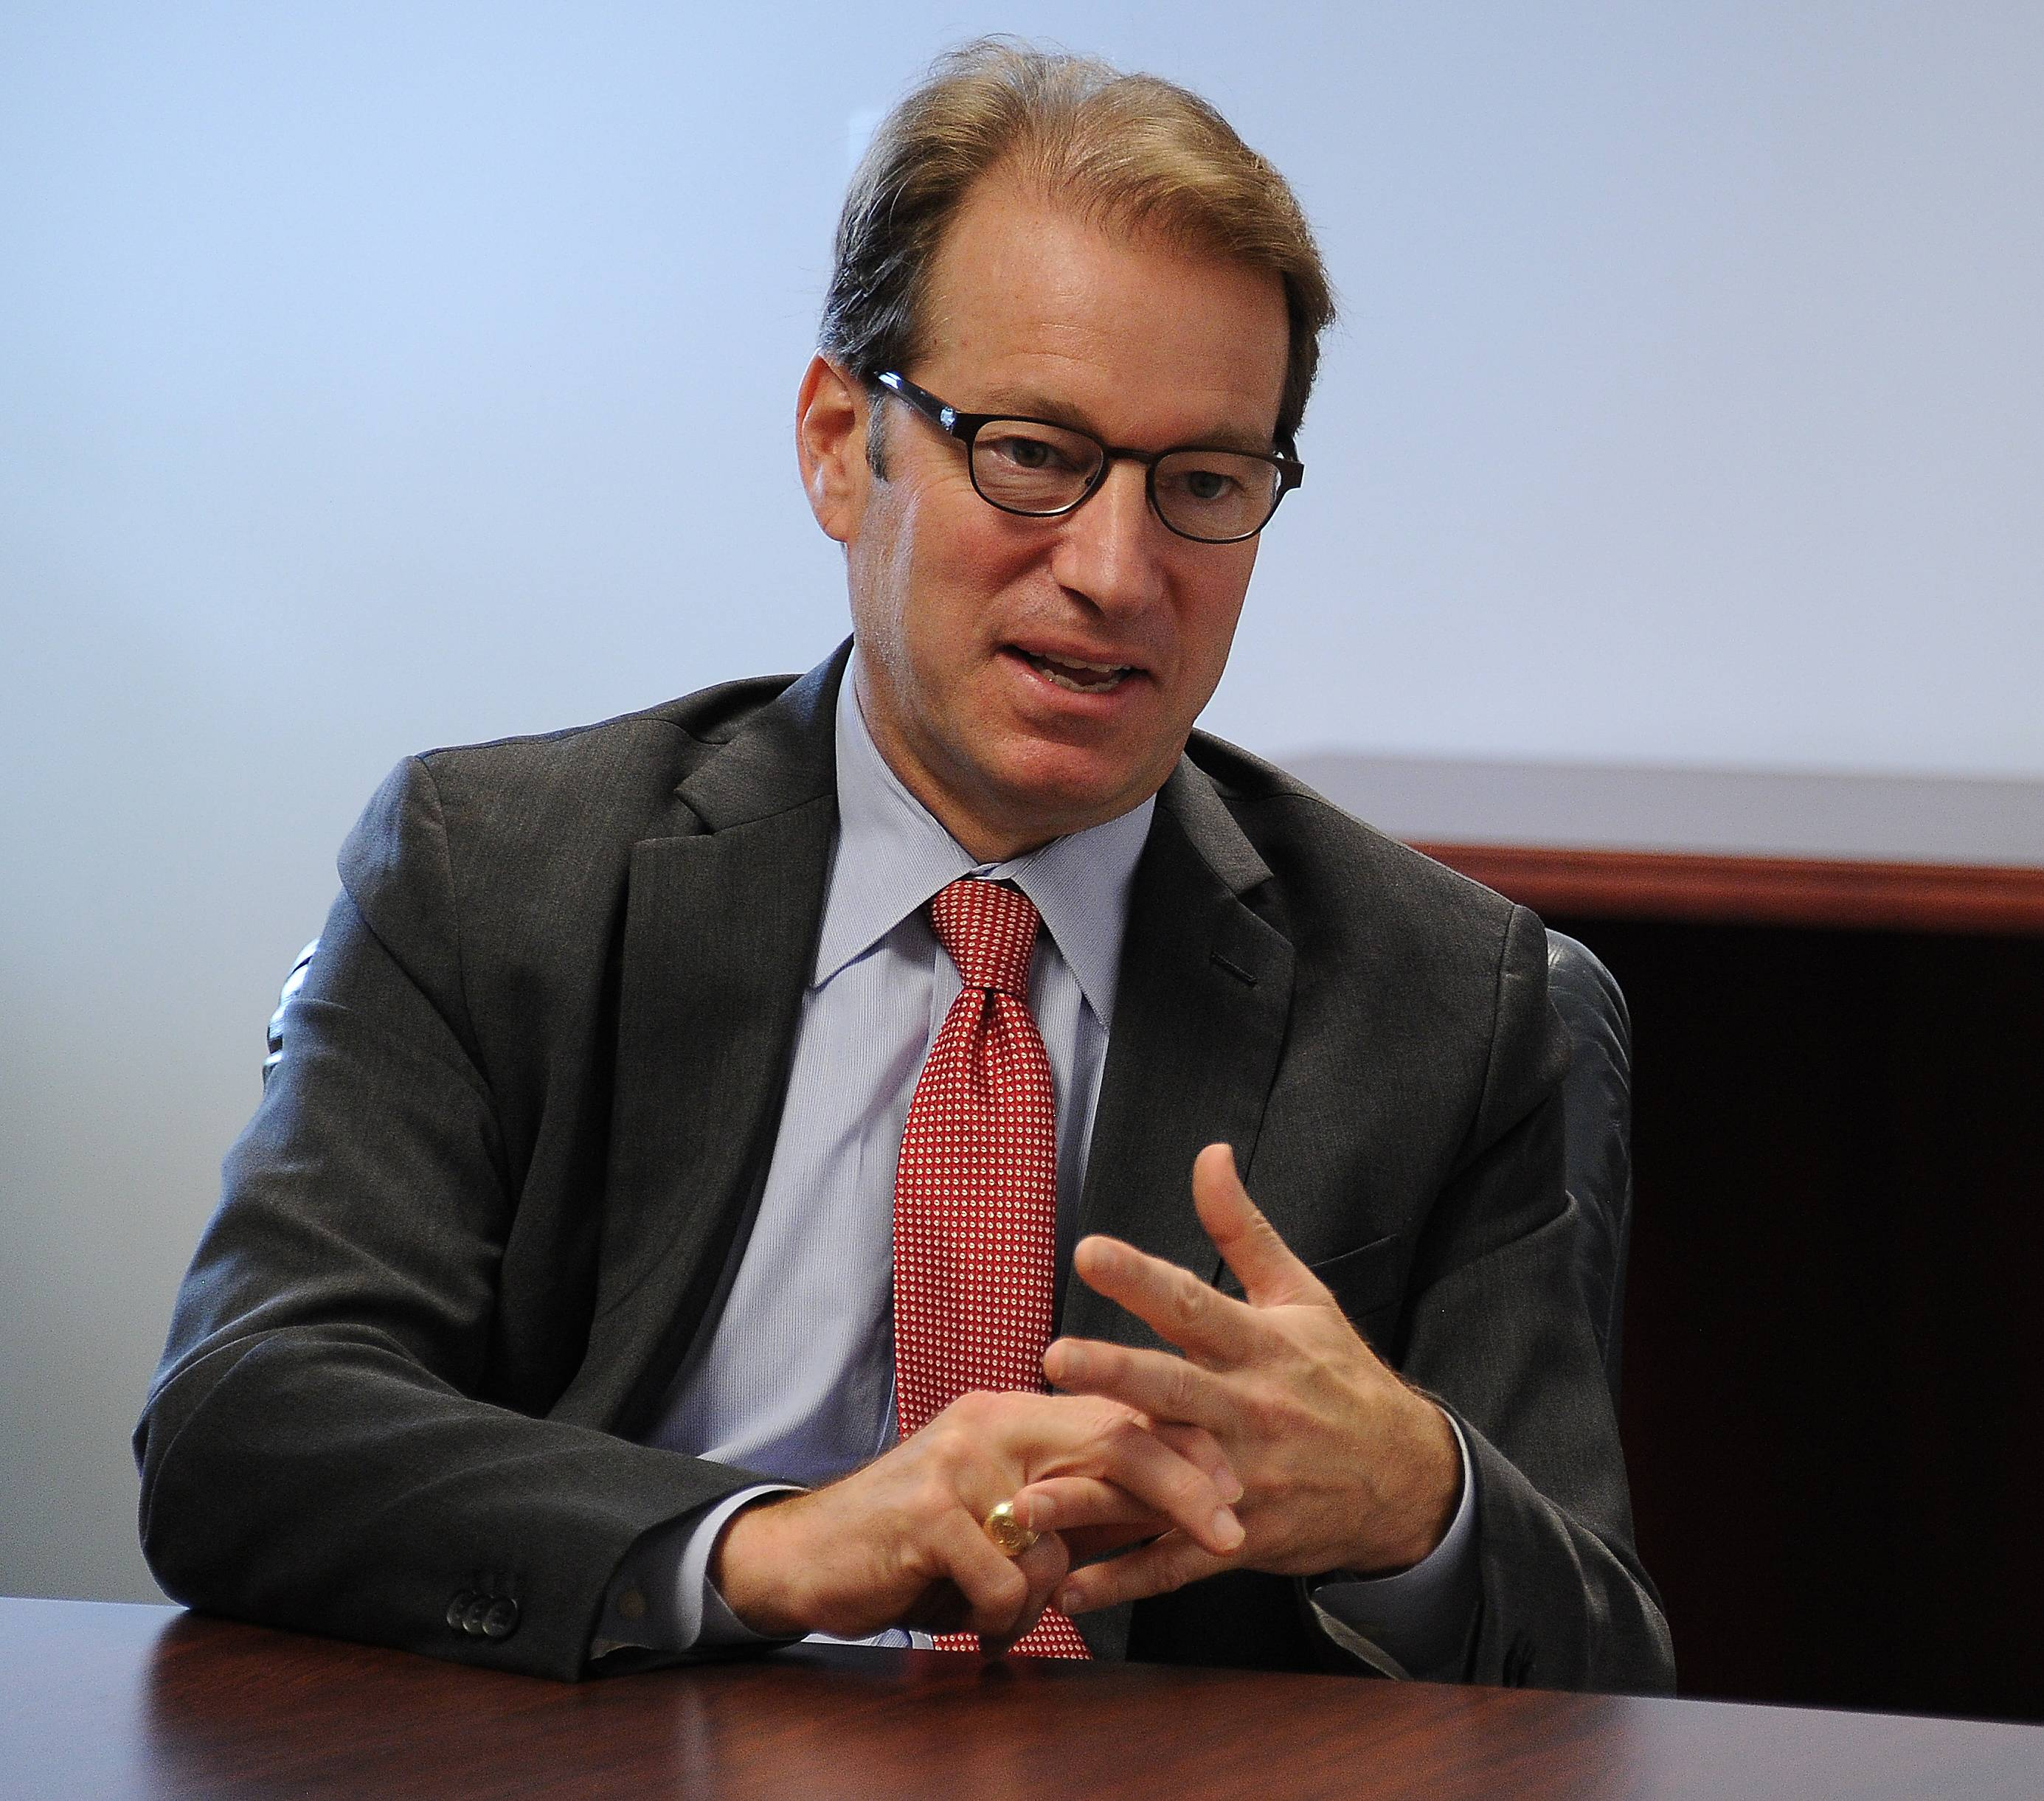 U.S. Rep. Peter Roskam won't attend Vice President Mike Pence's appearance in Rosemont Friday or a fundraiser Pence is headlining to support Roskam's re-election.